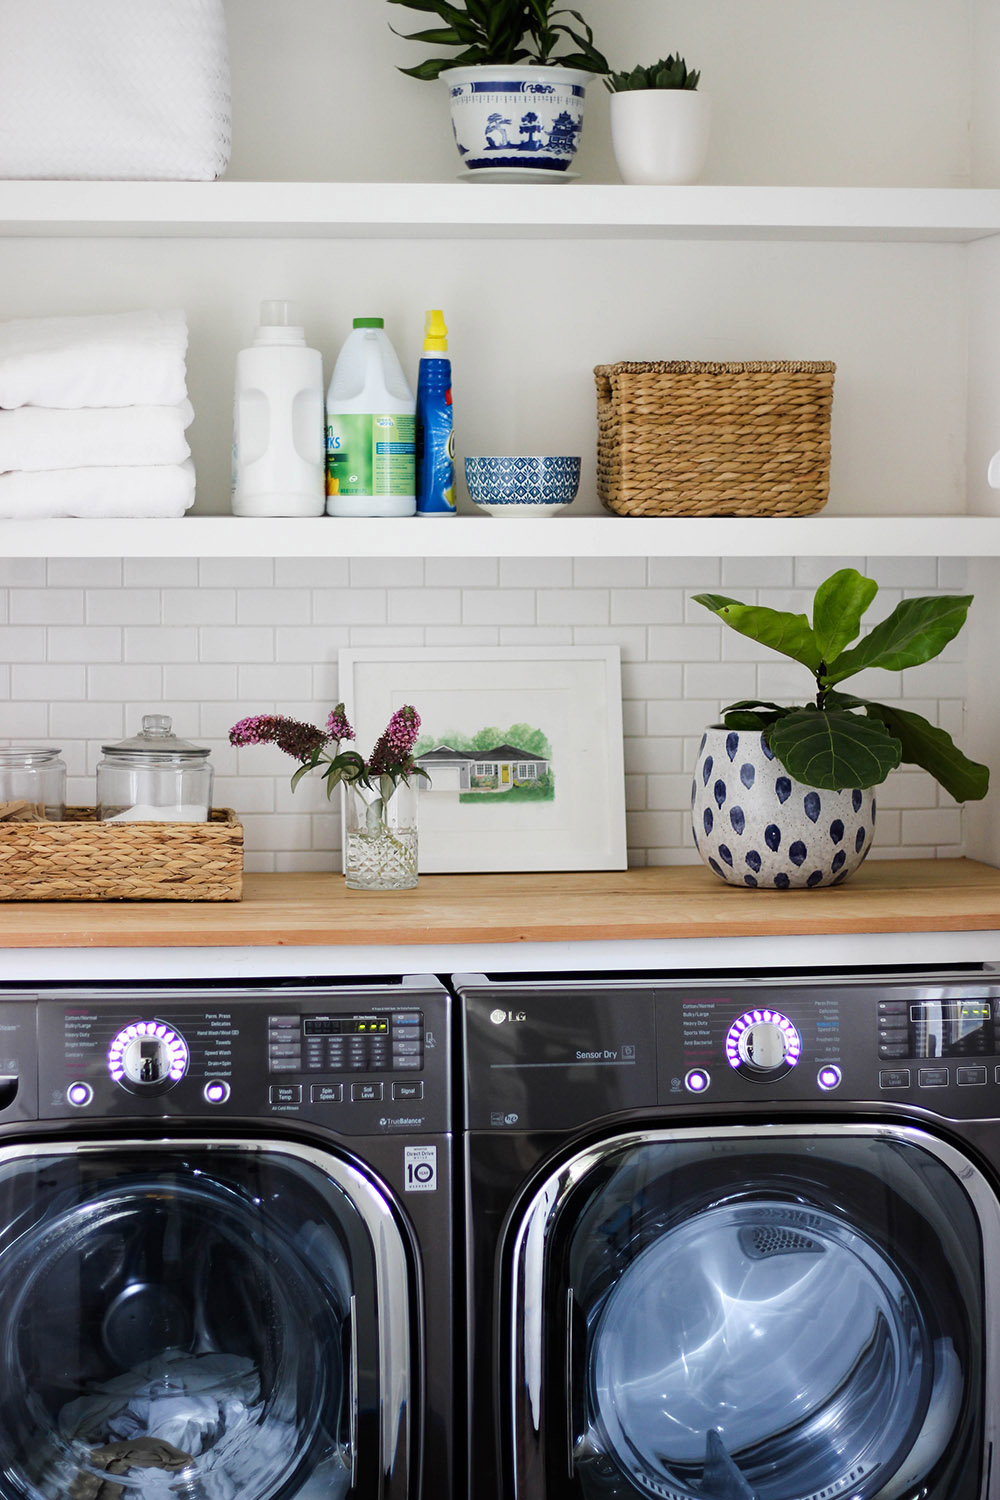 An updated laundry room with shelving, tile backsplash, and a butcher block counter.